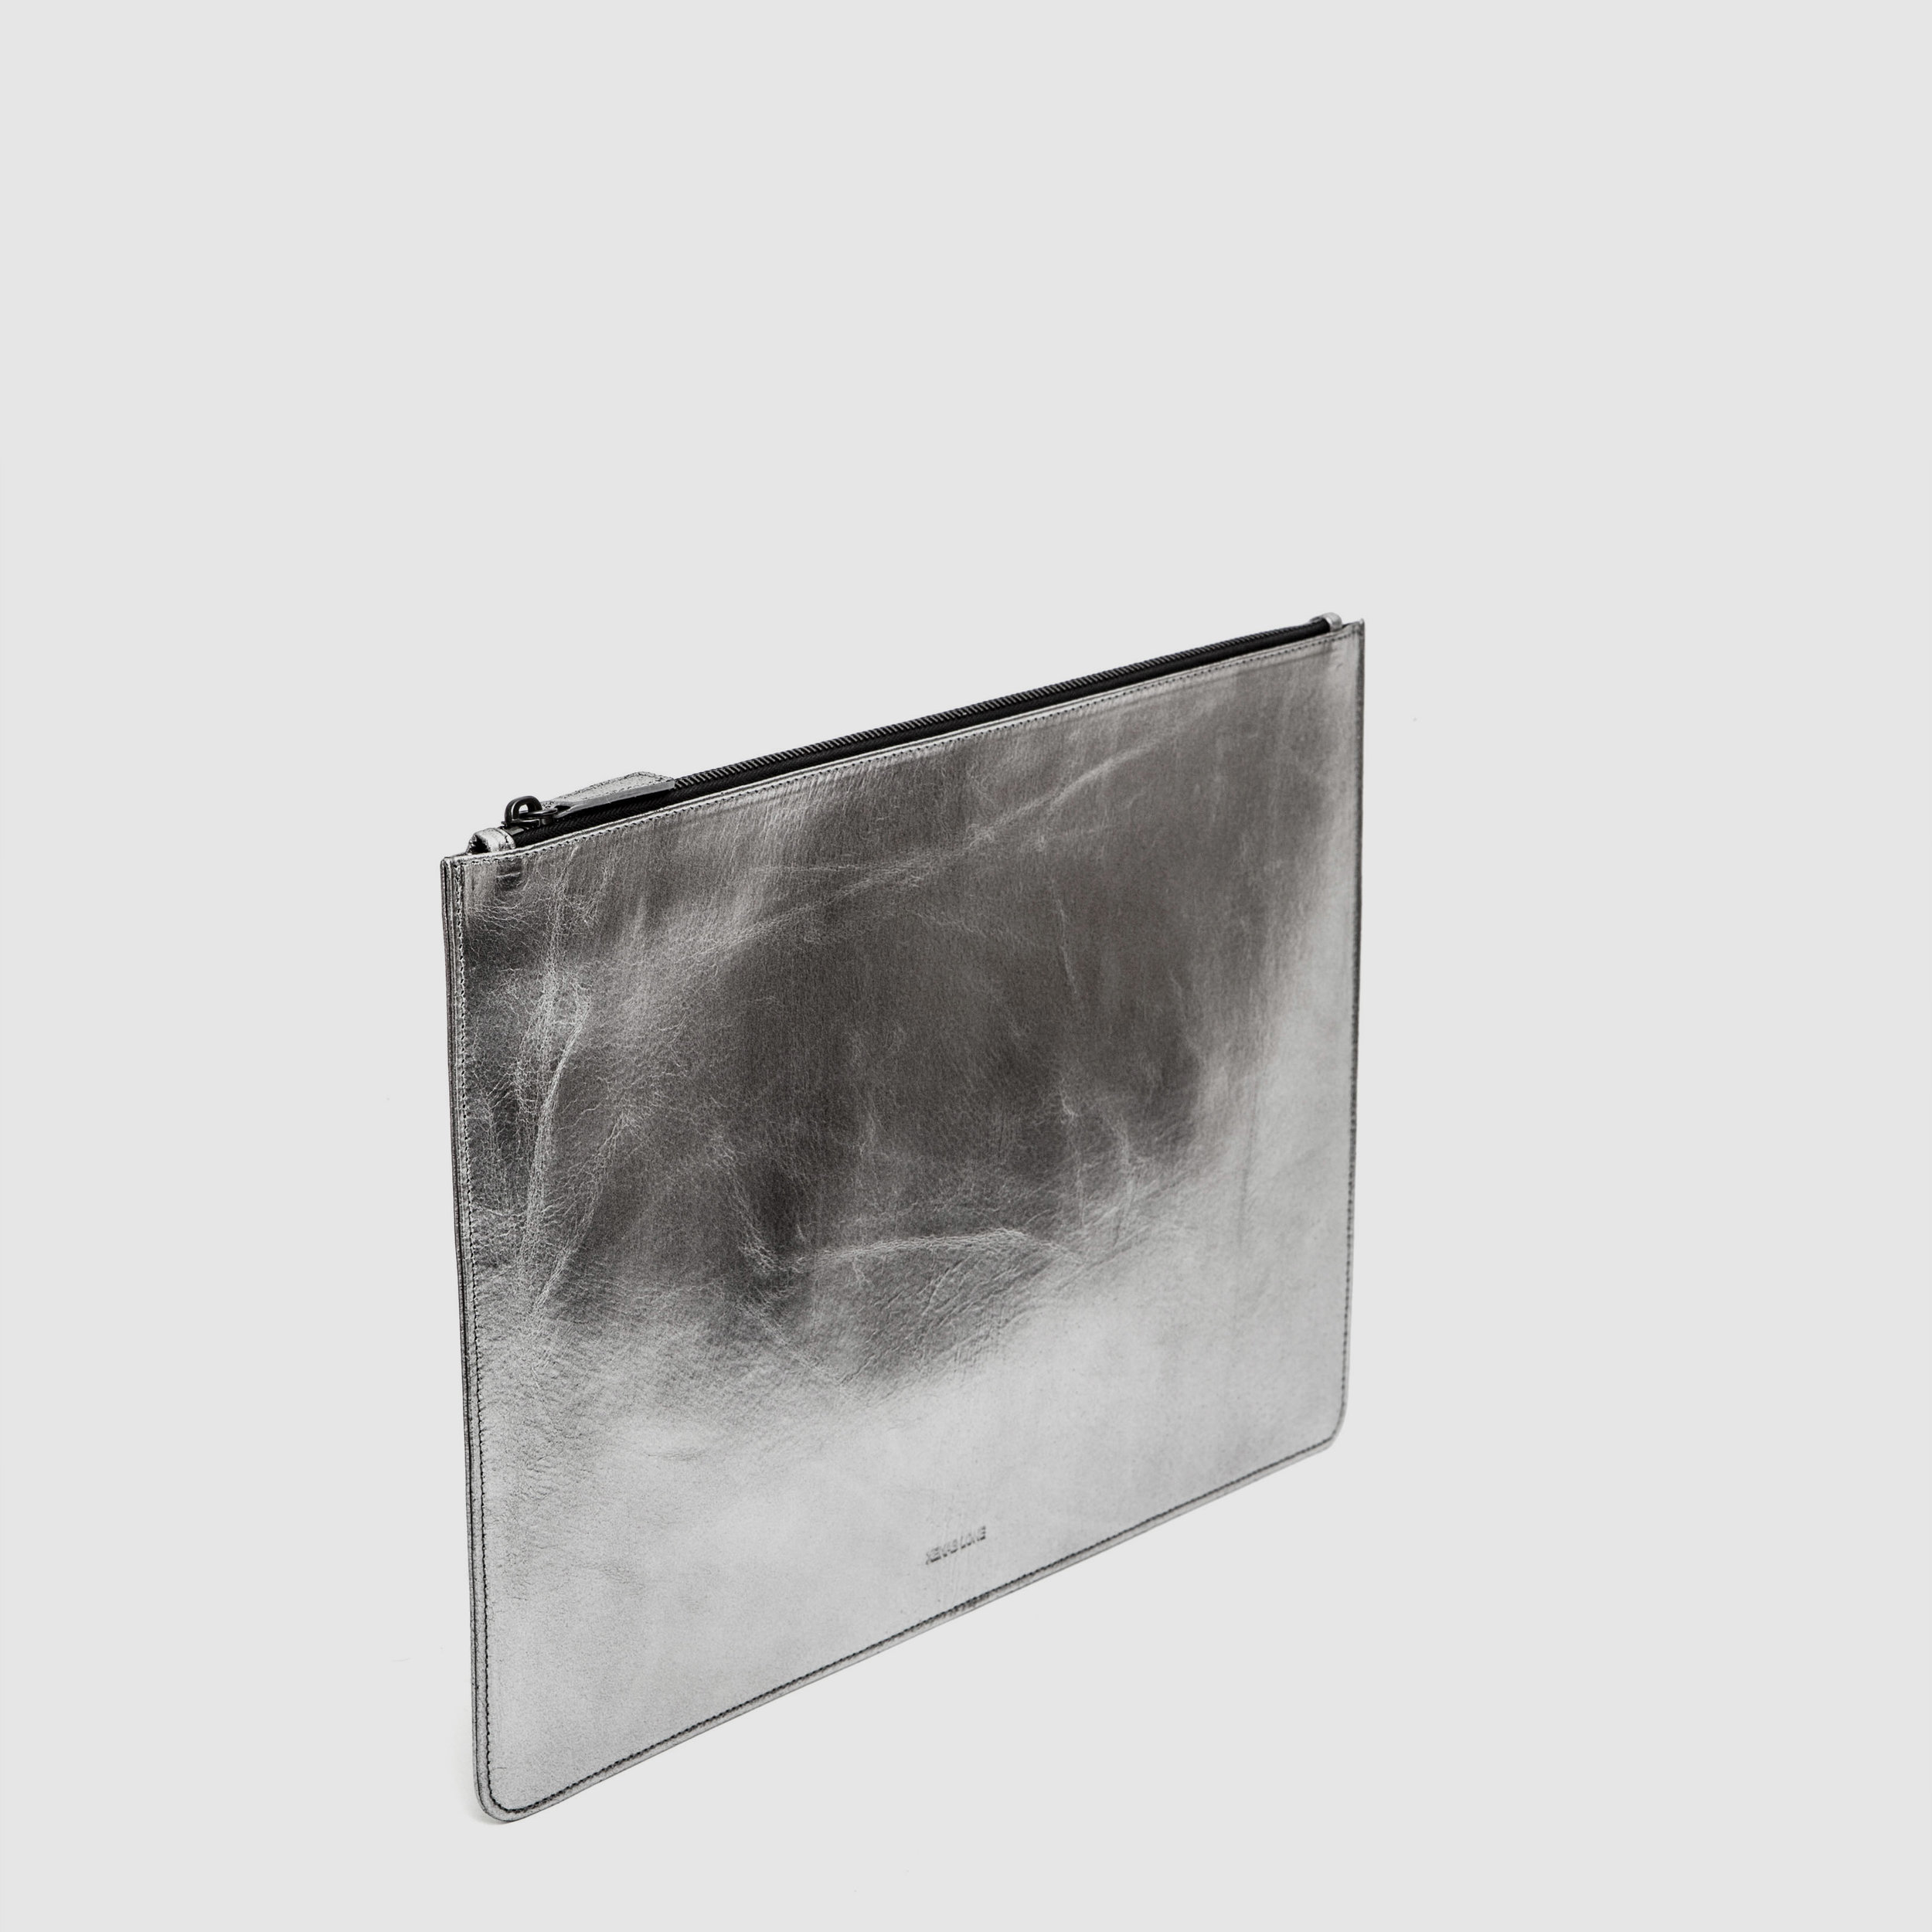 Wallets&Pouches_0000s_0002_Layer 47.jpg